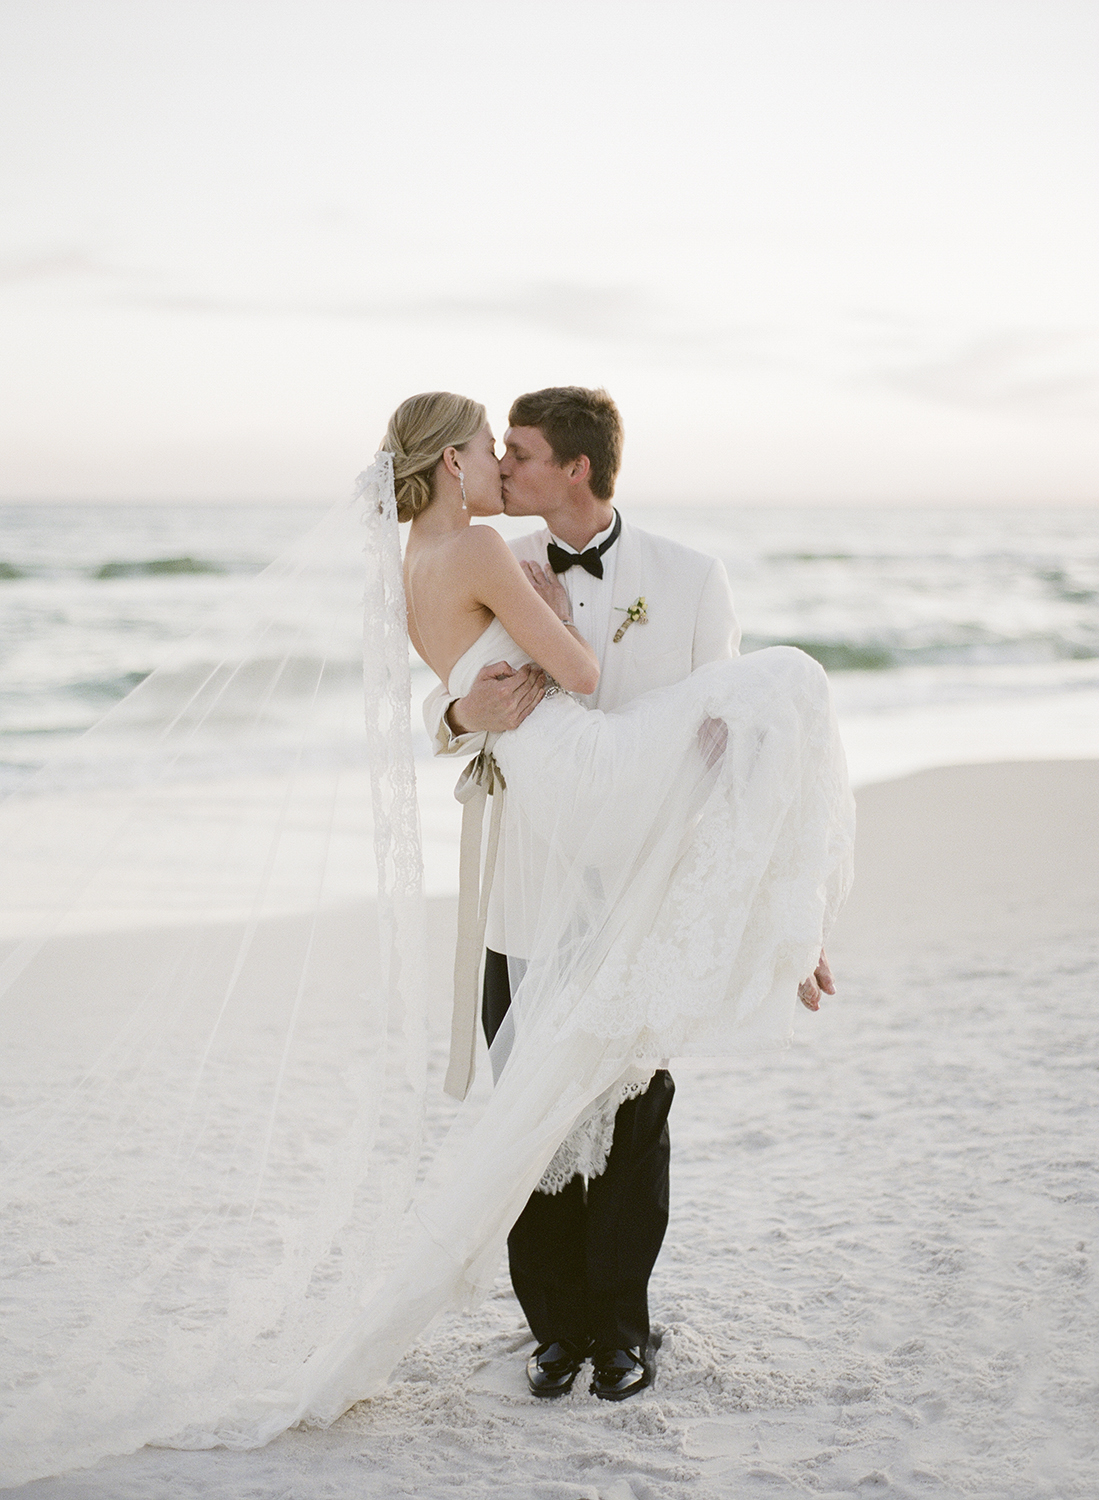 rosemary-beach-wedding-leslee-mitchell-33.jpg